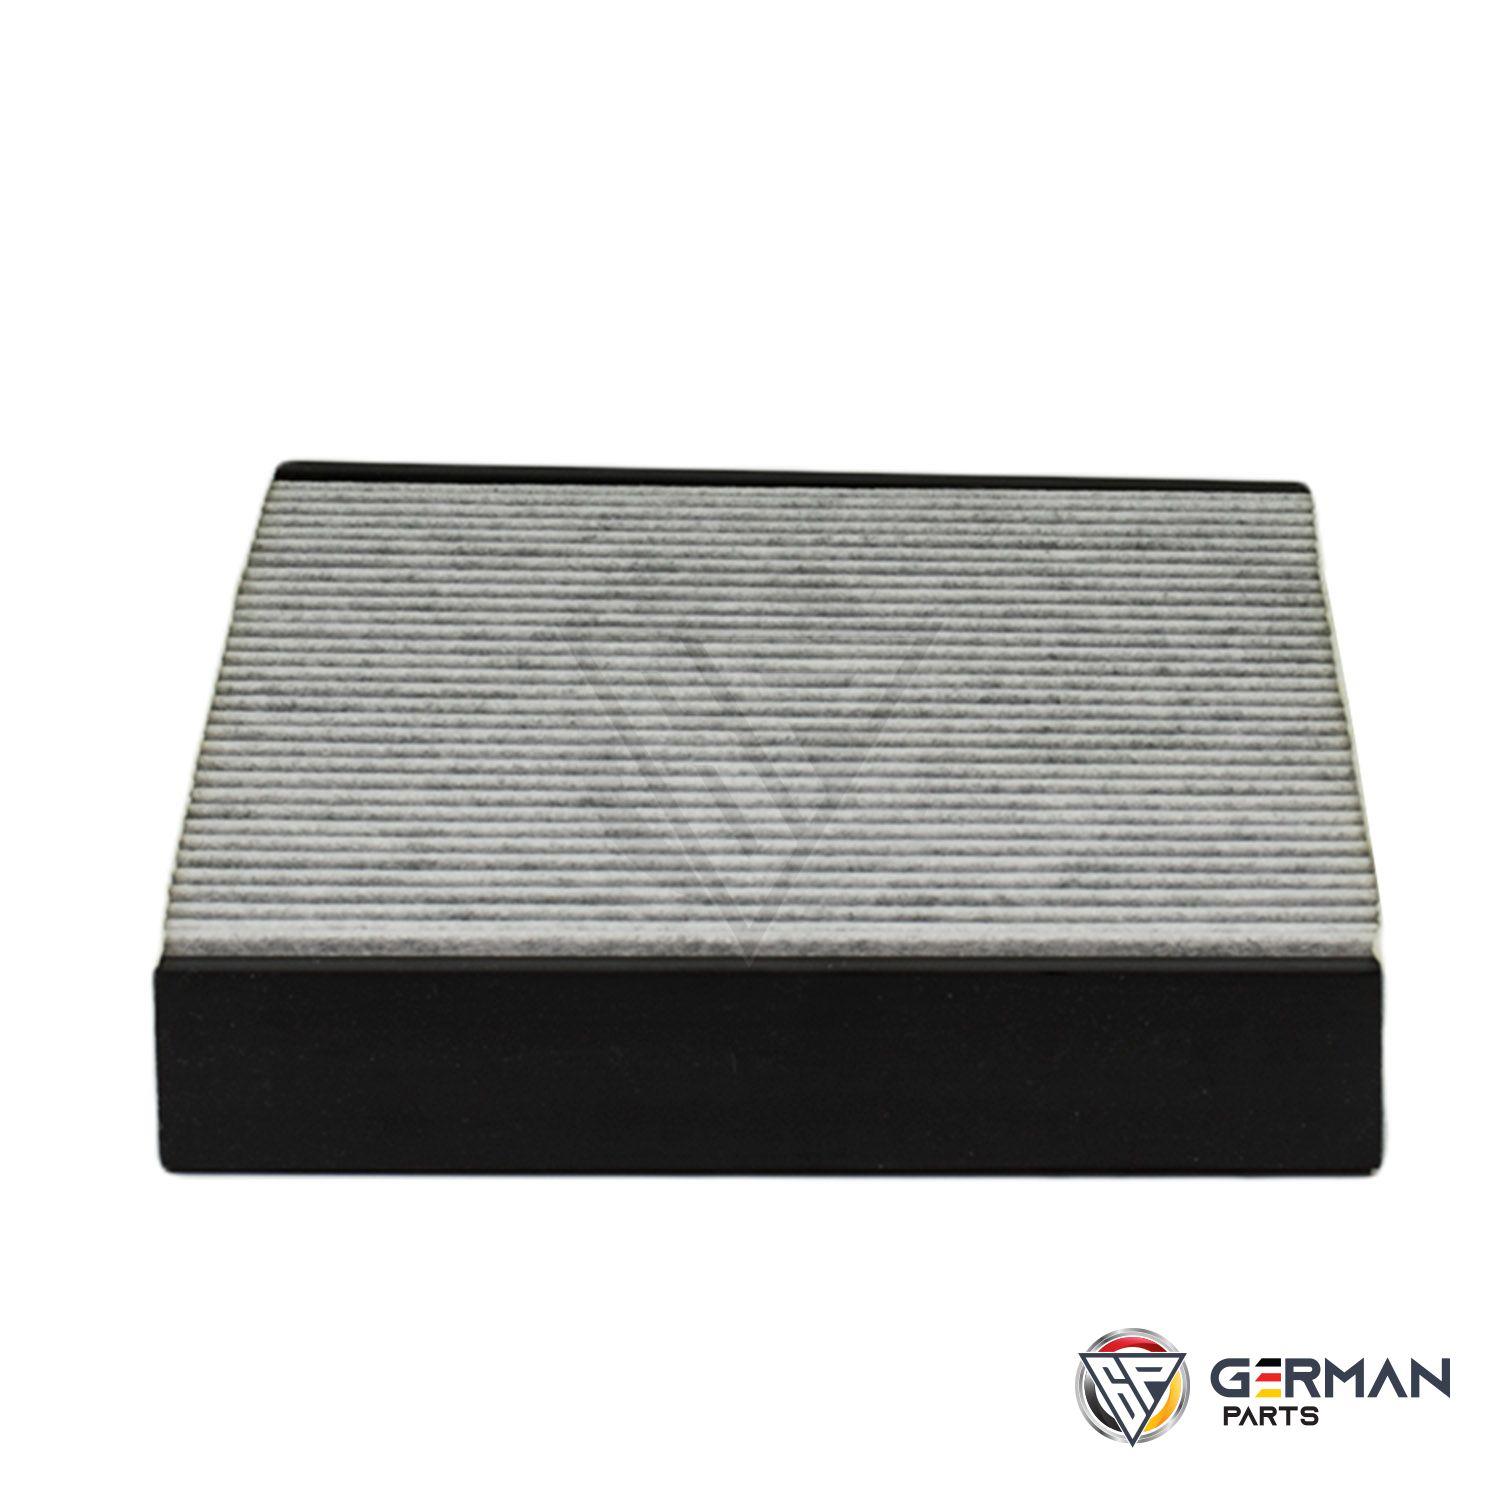 Buy Genuine Porsche Ac Dust Filter 99157362300 - German Parts